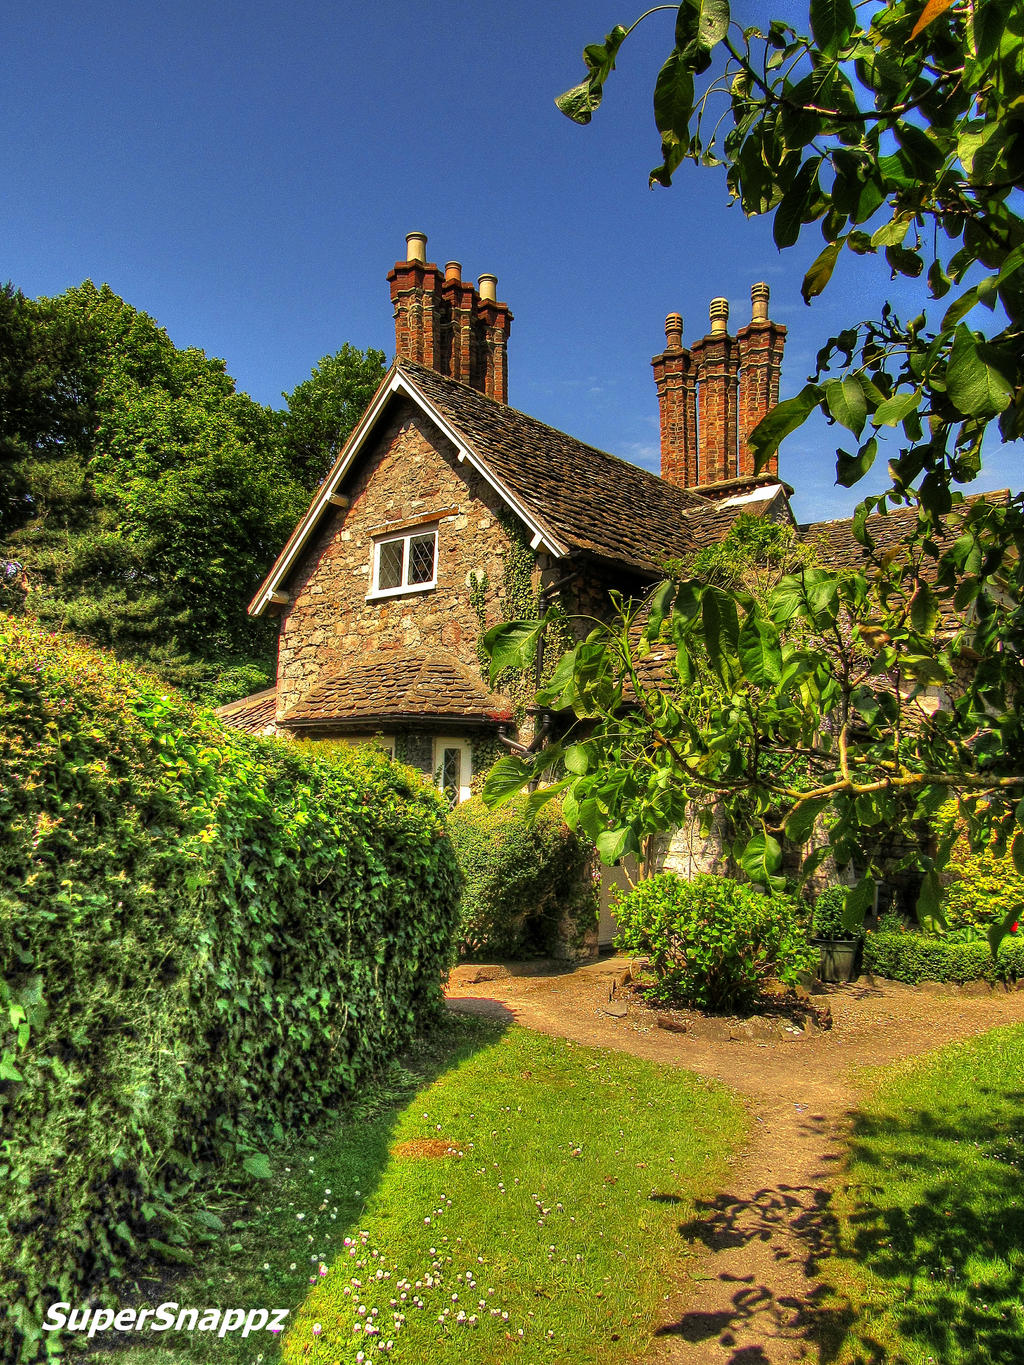 Double Cottage - Stock image by supersnappz16